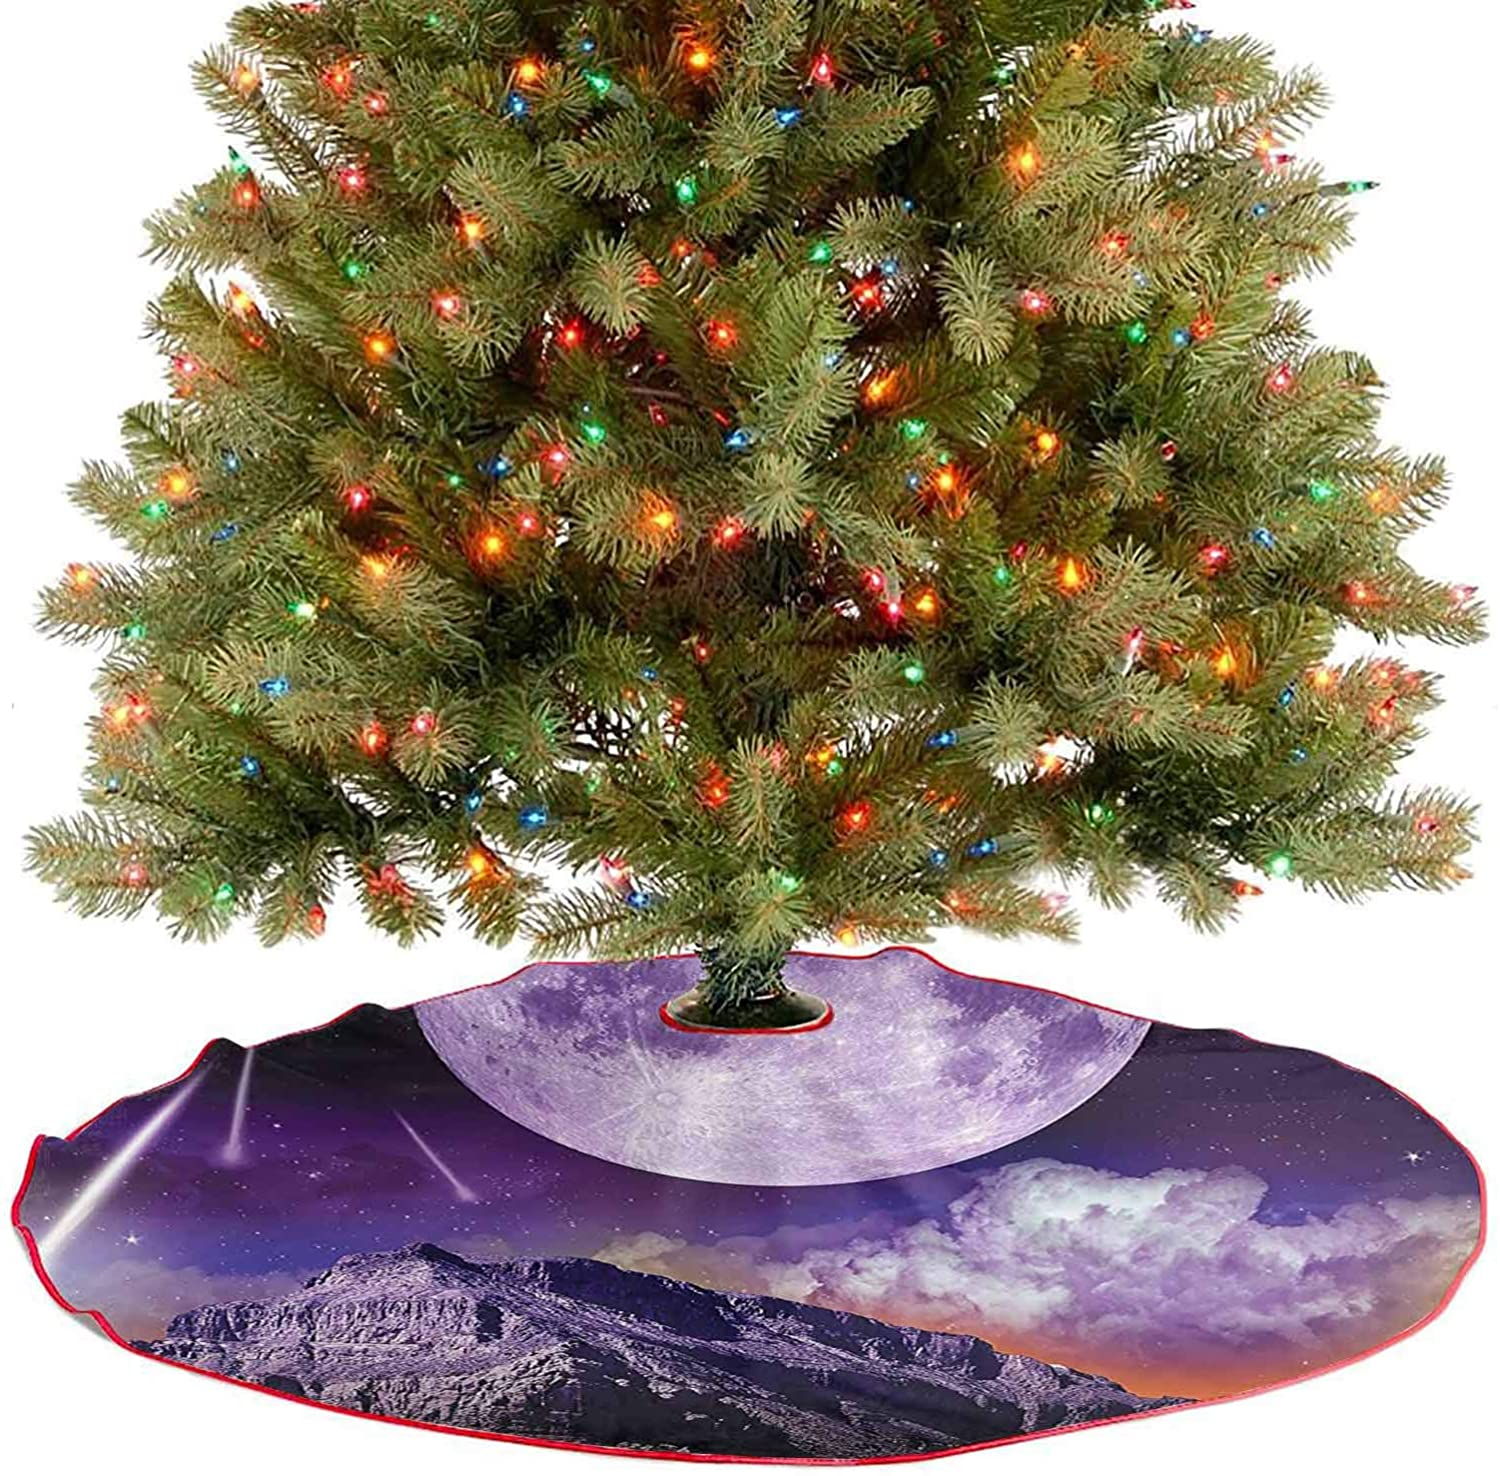 Adorise Luxury Christmas Tree Skirt Fantasy Dark Night in Earth Outer Space Planet Celestial Large Moons Comets Holiday Party Decoration for Farmhouse Fireplace Holiday Party - 48 Inch